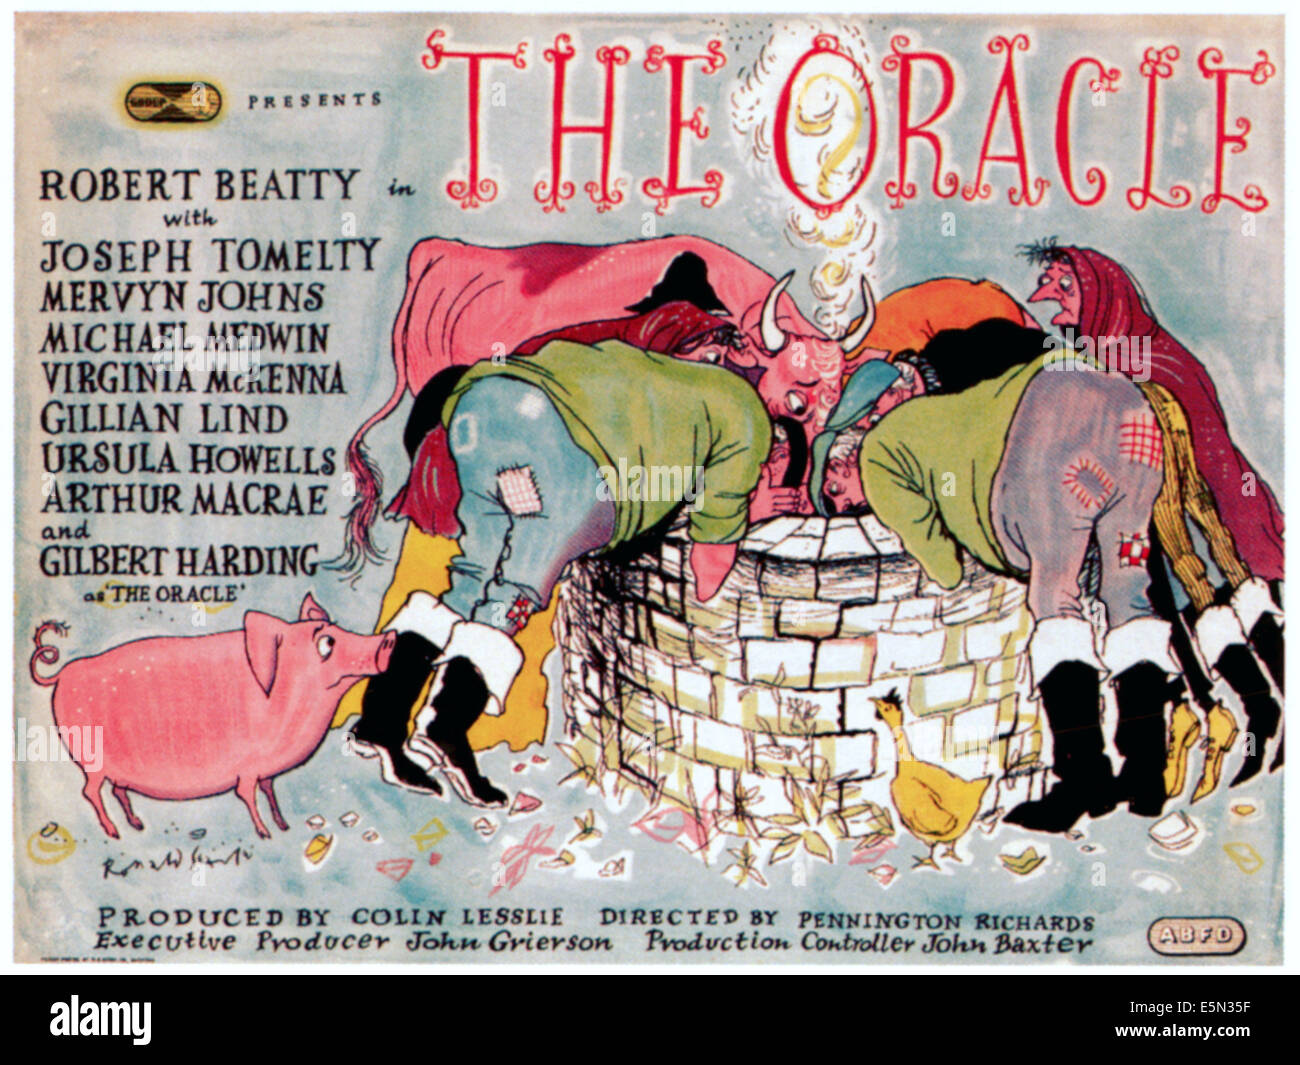 THE ORACLE, 1953 Poster art - Stock Image